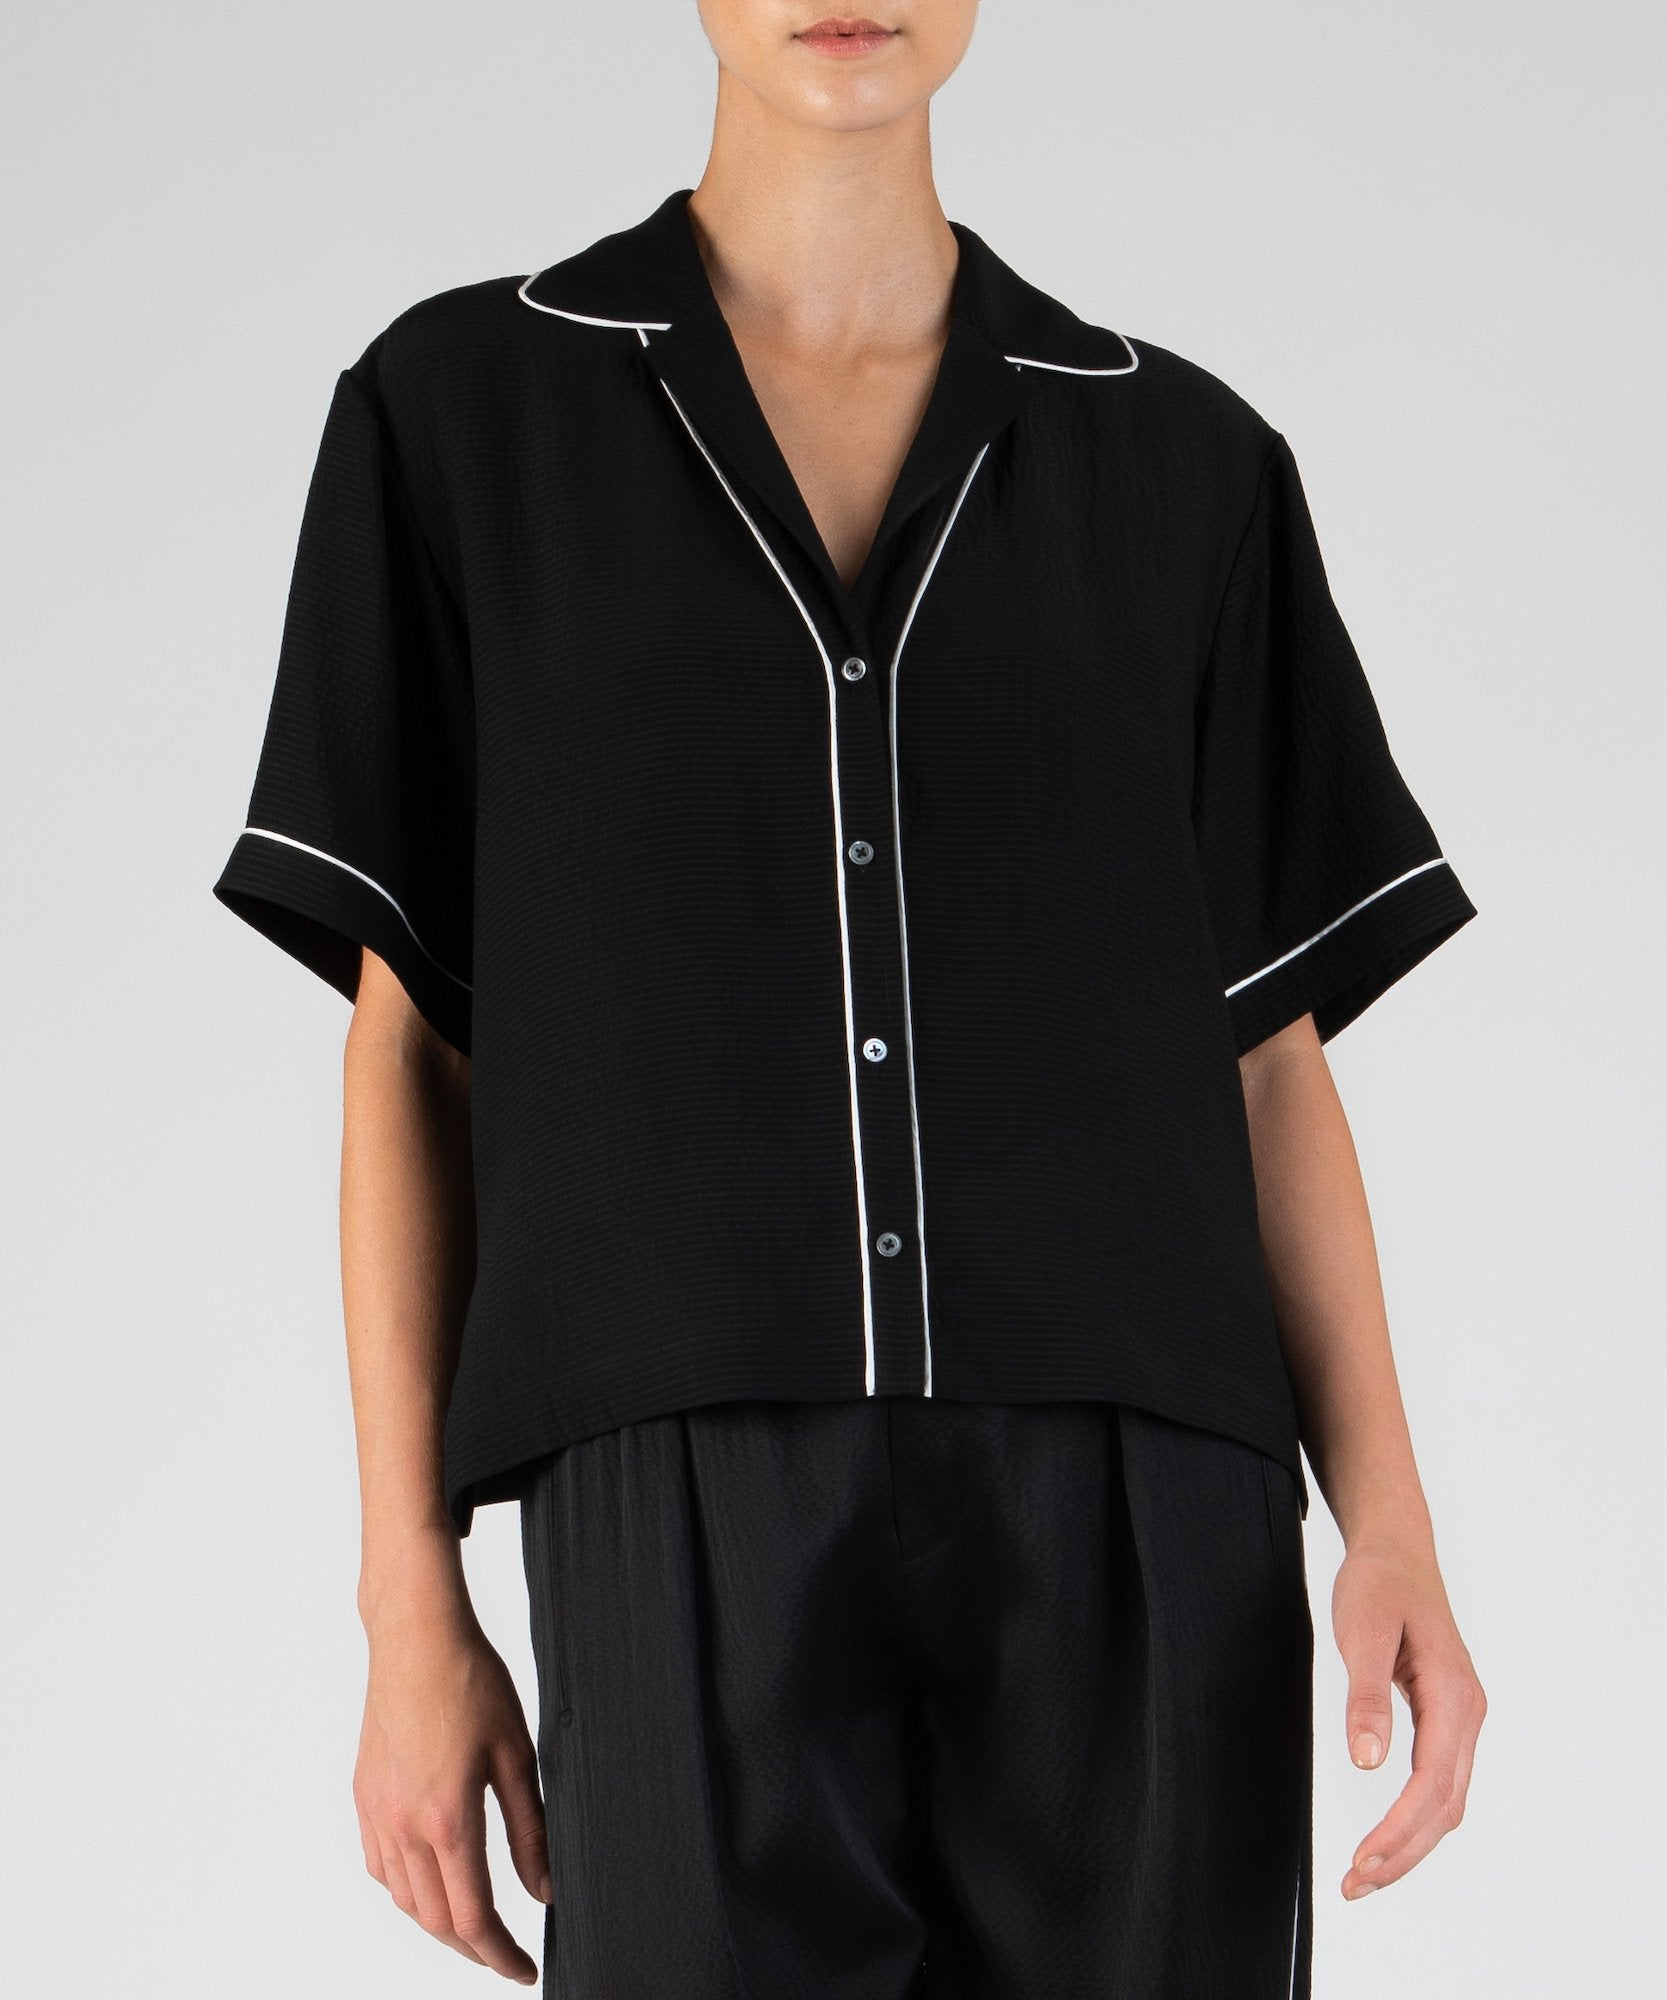 Black Hammered Silk Short Sleeve Cropped Shirt - Women's Blouse by ATM Anthony Thomas Melillo